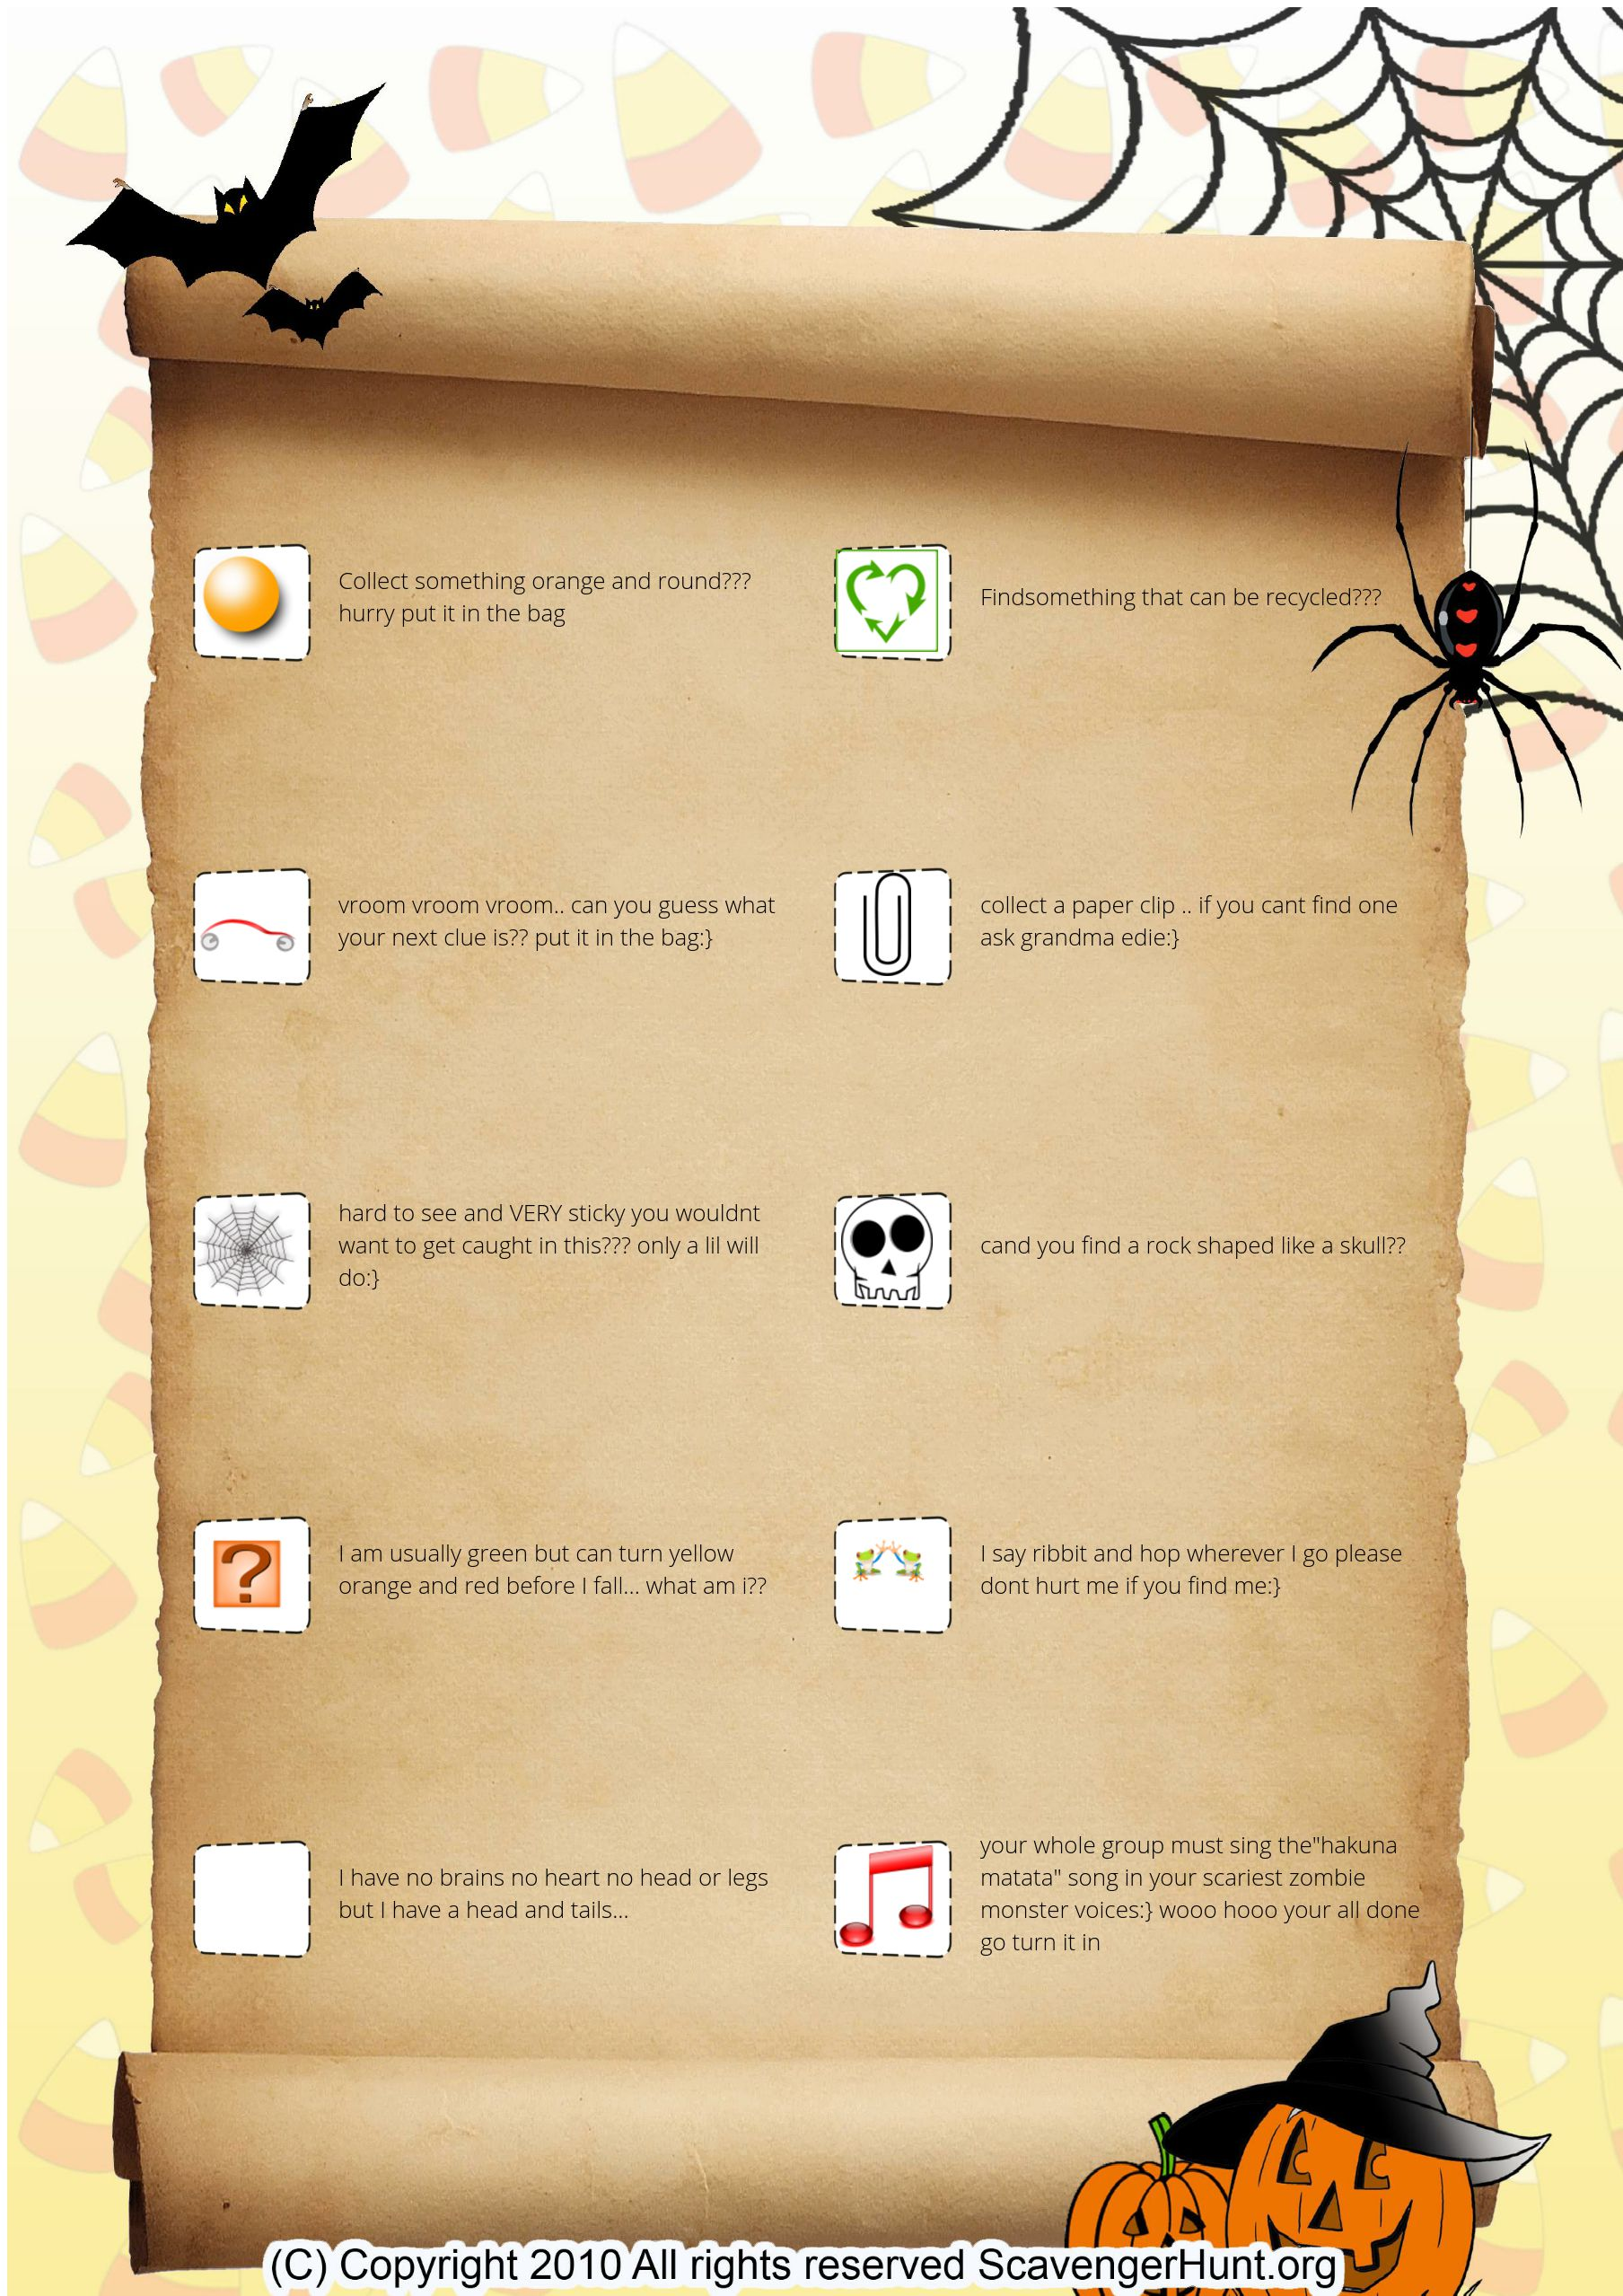 You Wouldnt Want To Get Caught Between >> Ryders Spooky Scavenger Hunt